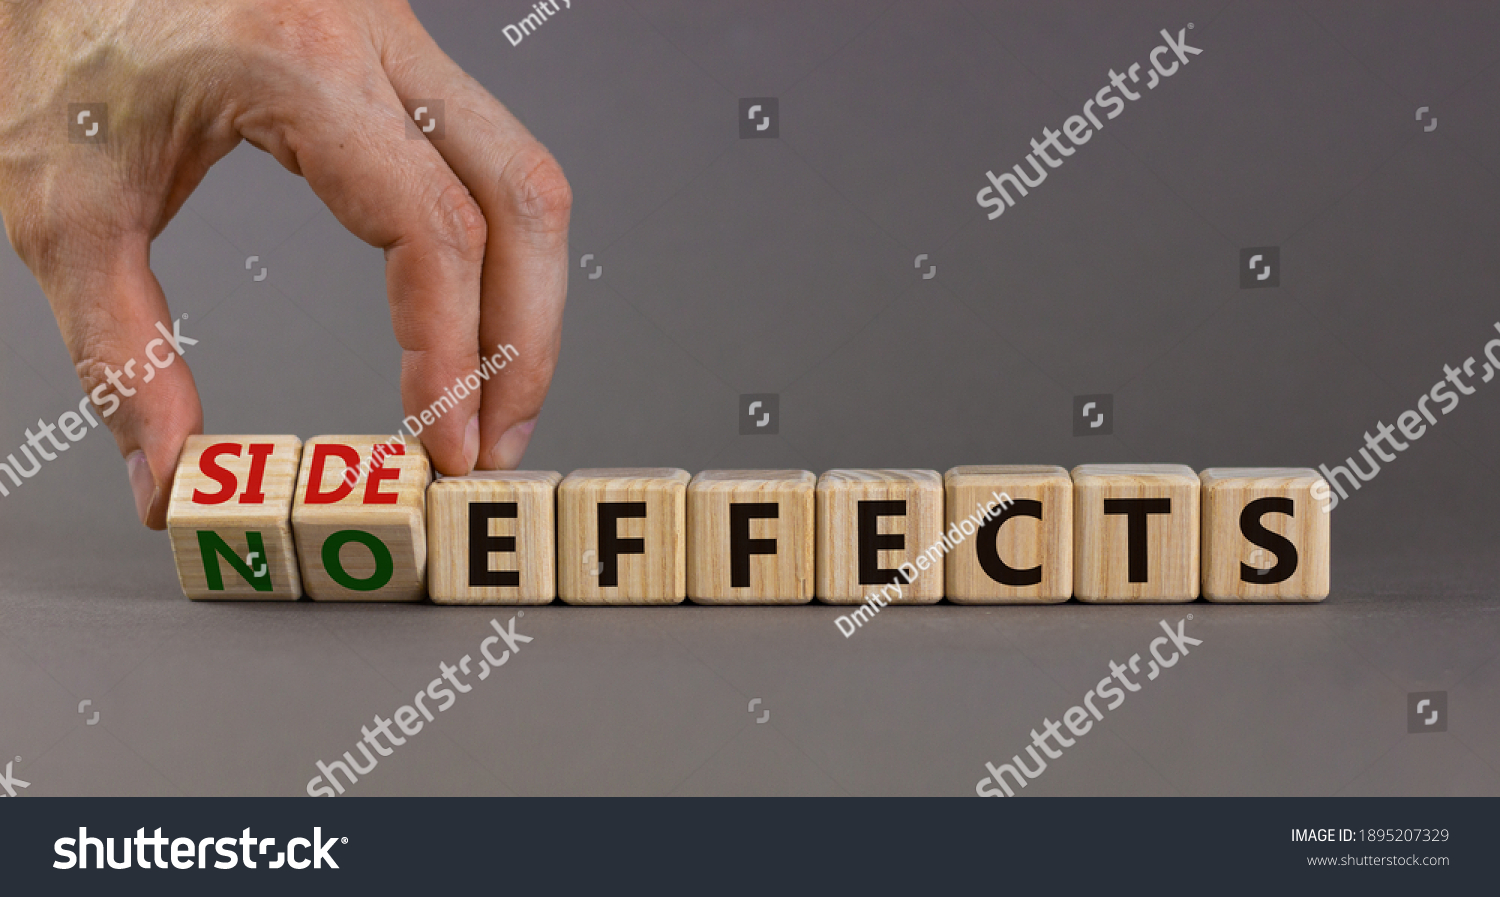 Side or no effects symbol. Hand turns wooden cubes and changes words 'no effects' to 'side effects'. Beautiful grey background, copy space. Medical, covid-19 pandemic corona side effects concept. #1895207329